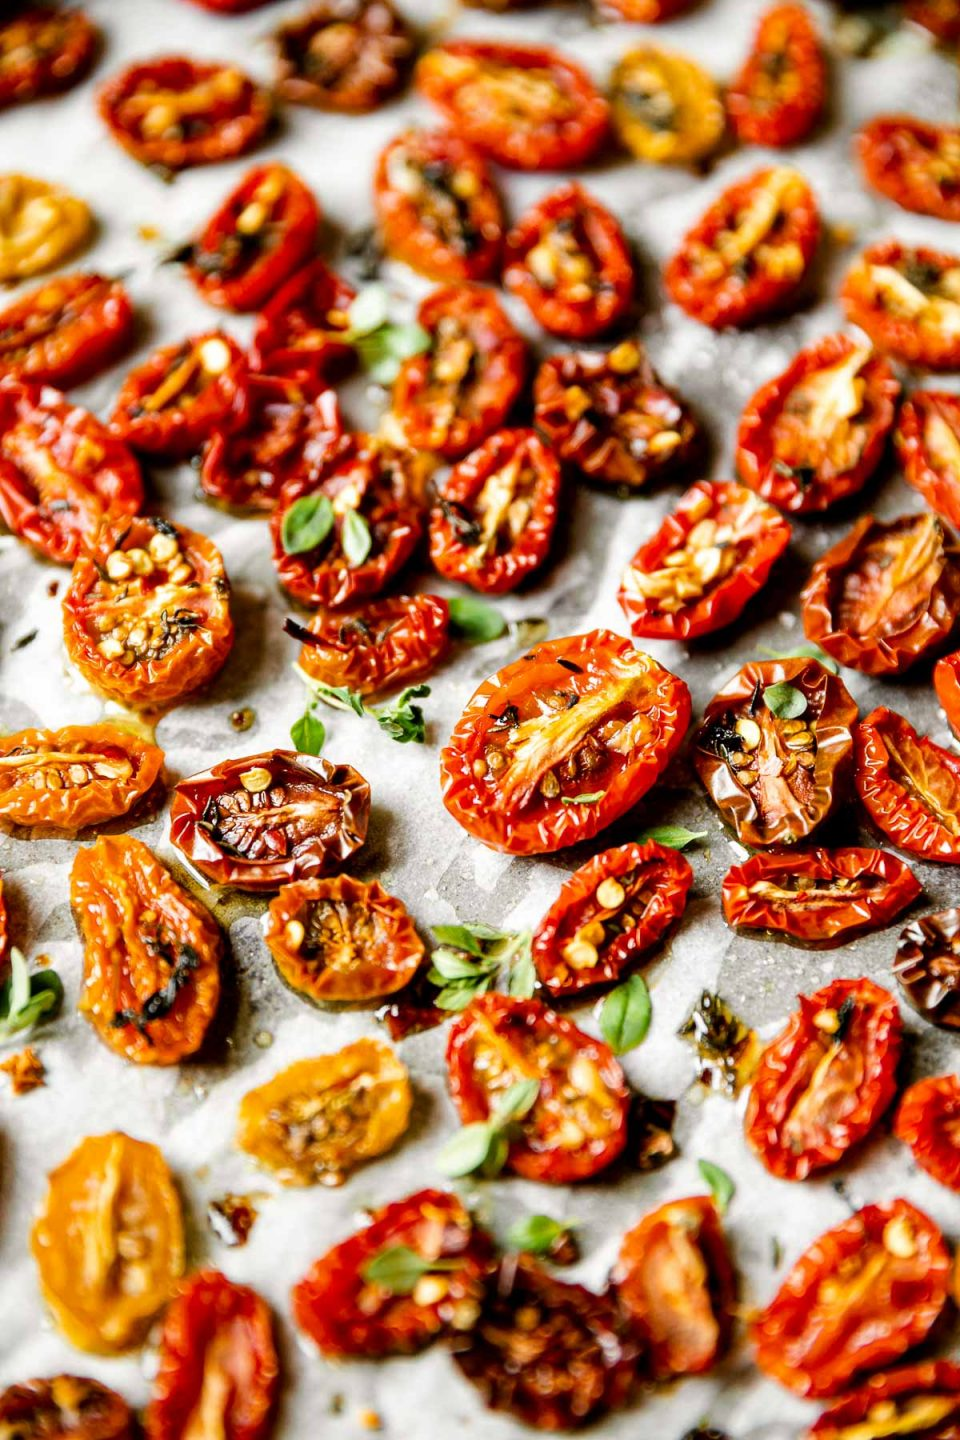 A close up and angled shot of slow roasted cherry tomatoes arranged on a sheet pan lined with white parchment paper & sprinkled with fresh herbs.